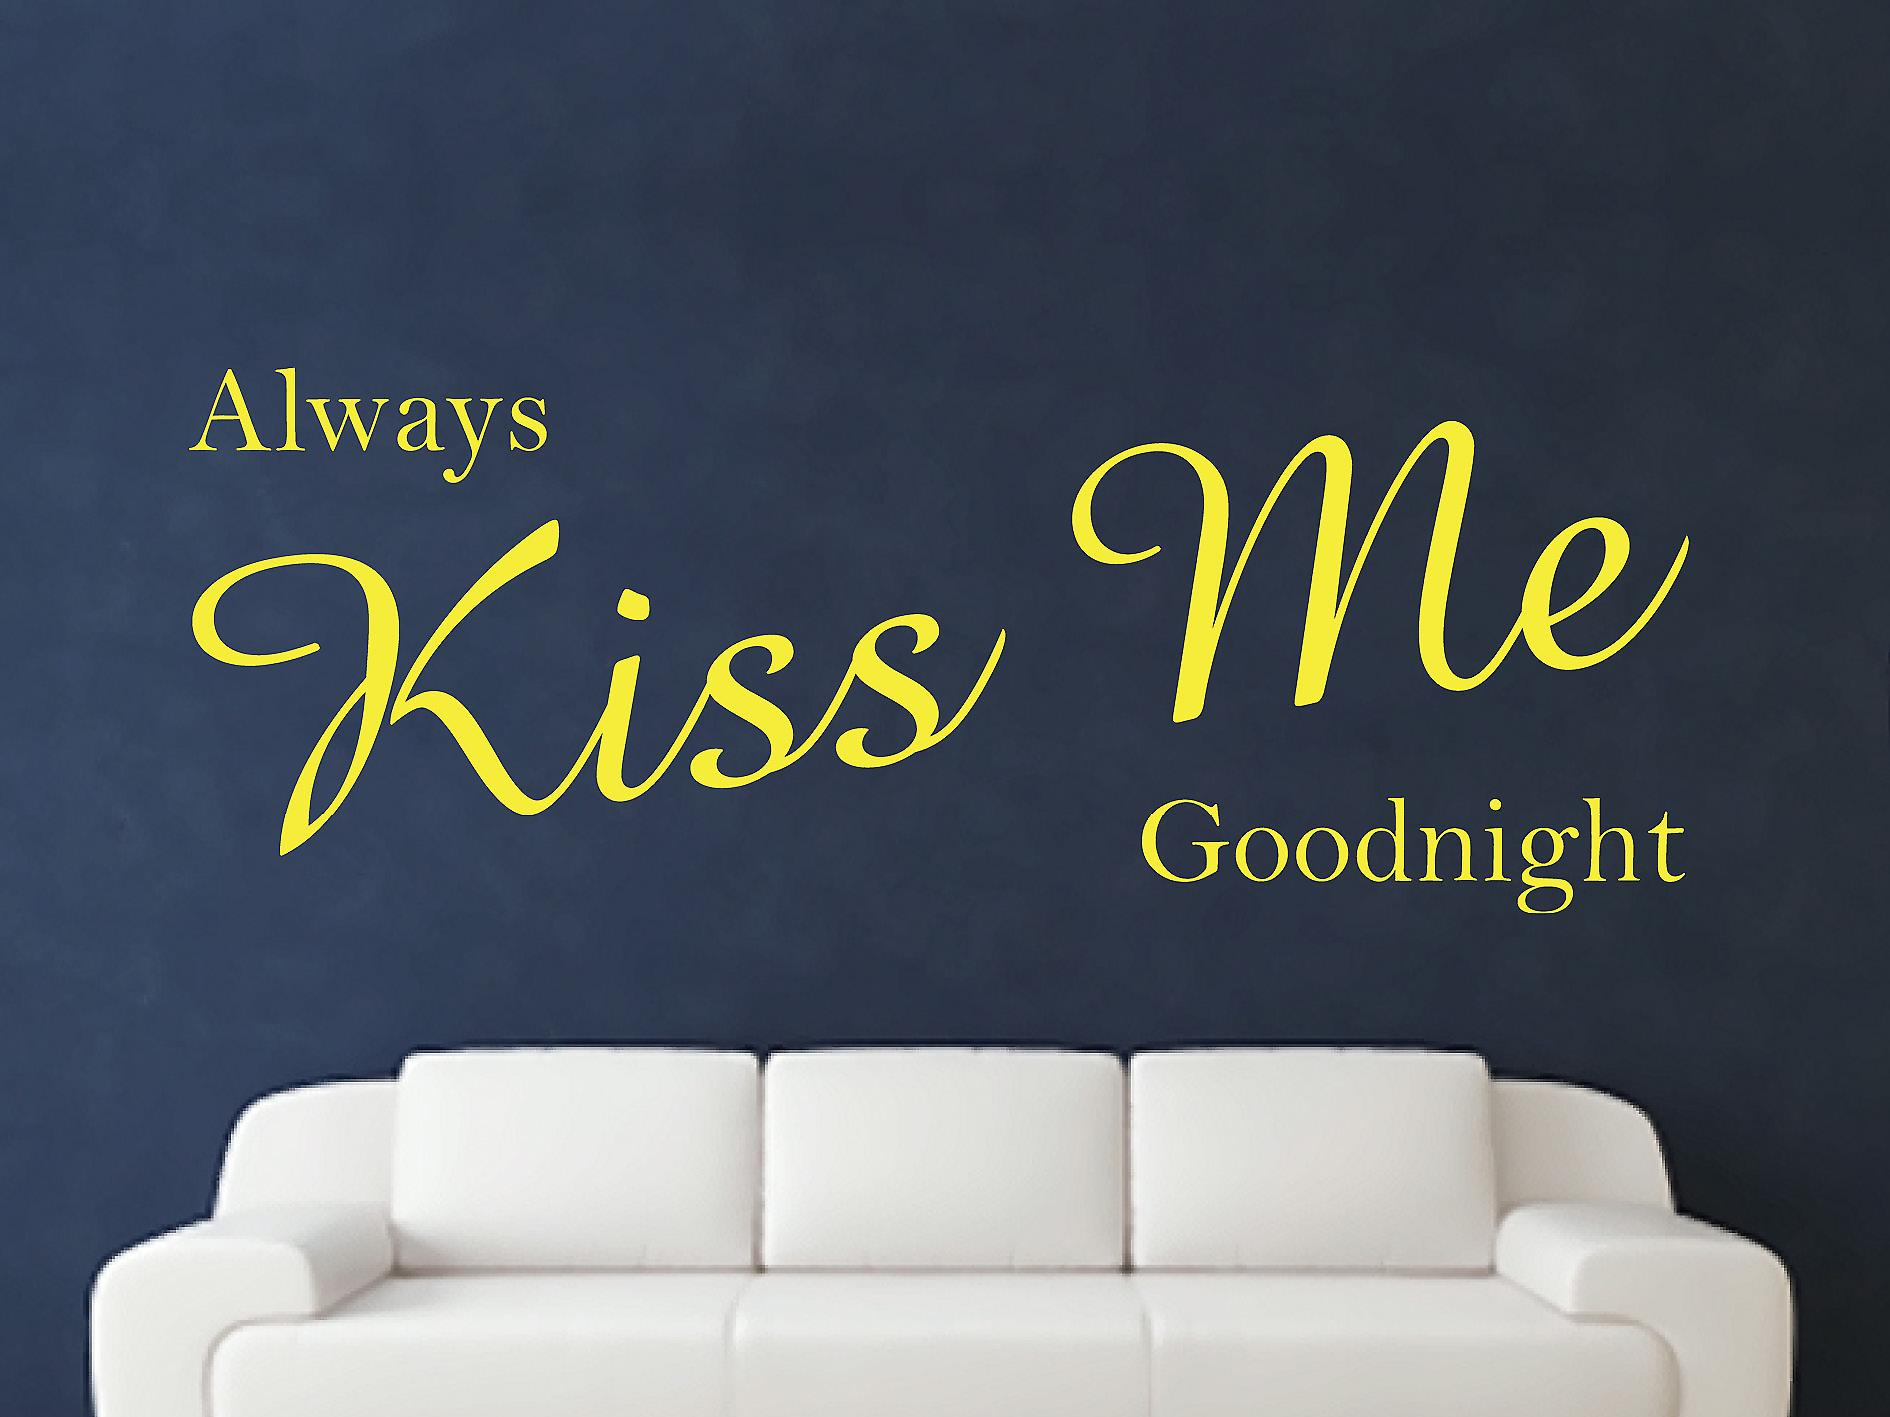 Always Kiss Me Goodnight Wall Art Sticker - Sulphur